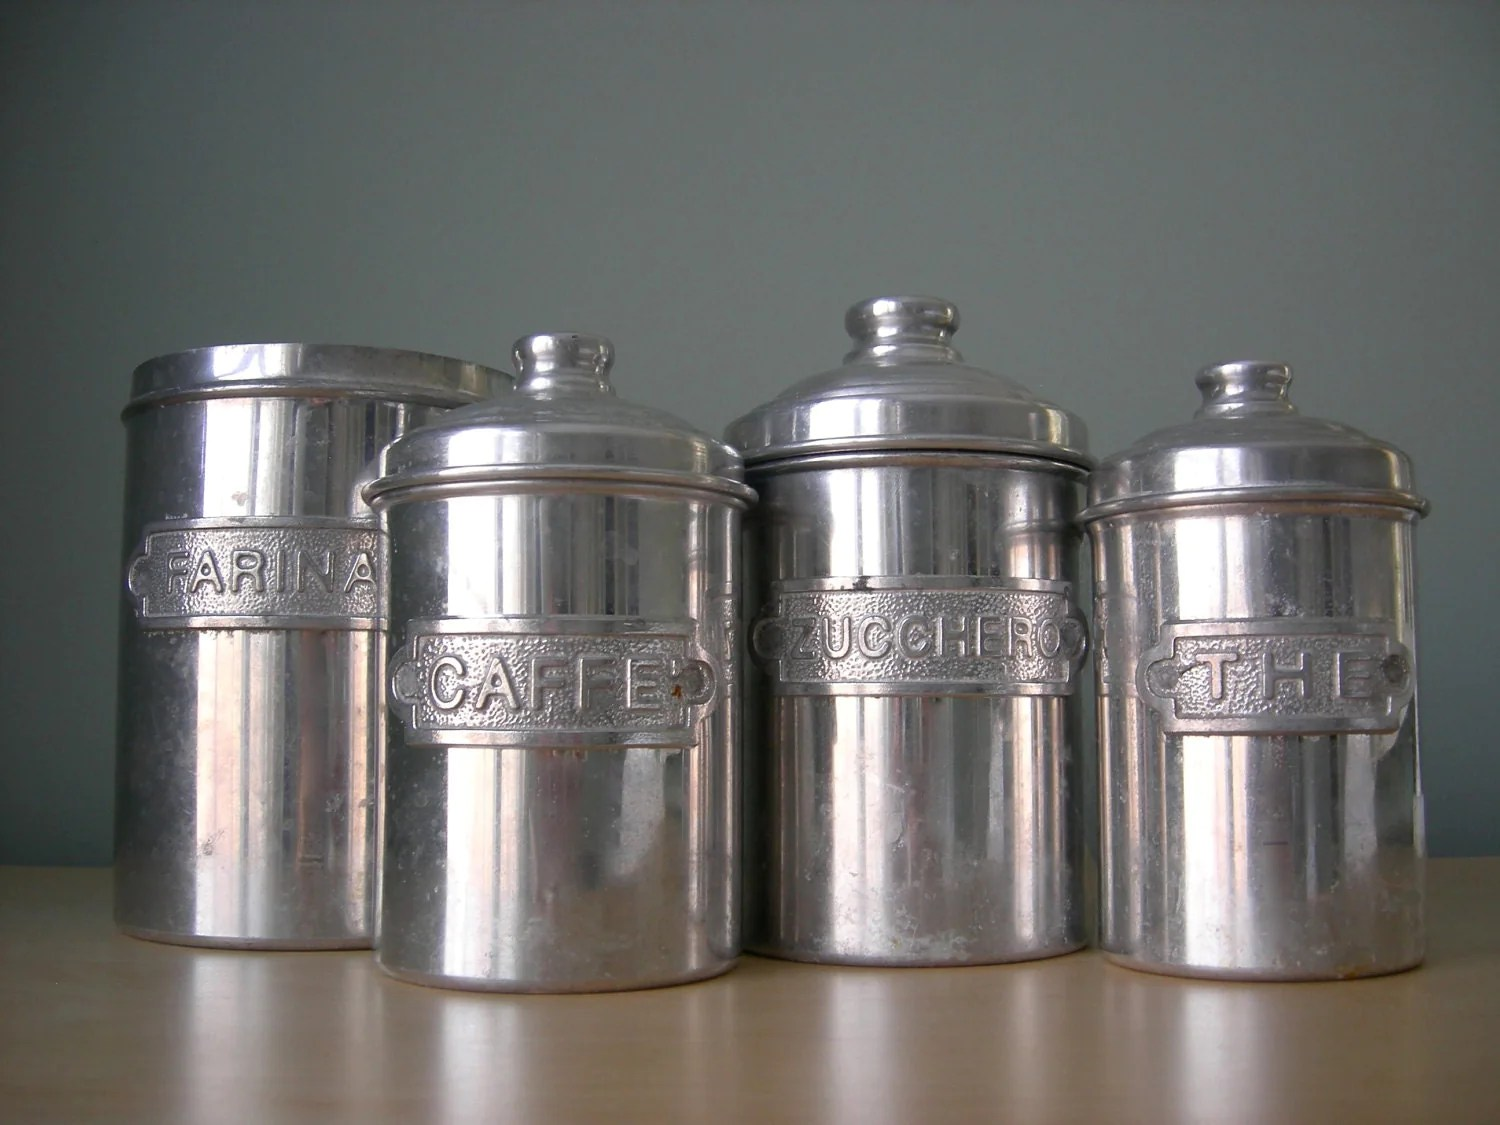 tuscan kitchen canisters undermount corner sink italian canister set by tippleandsnack on etsy